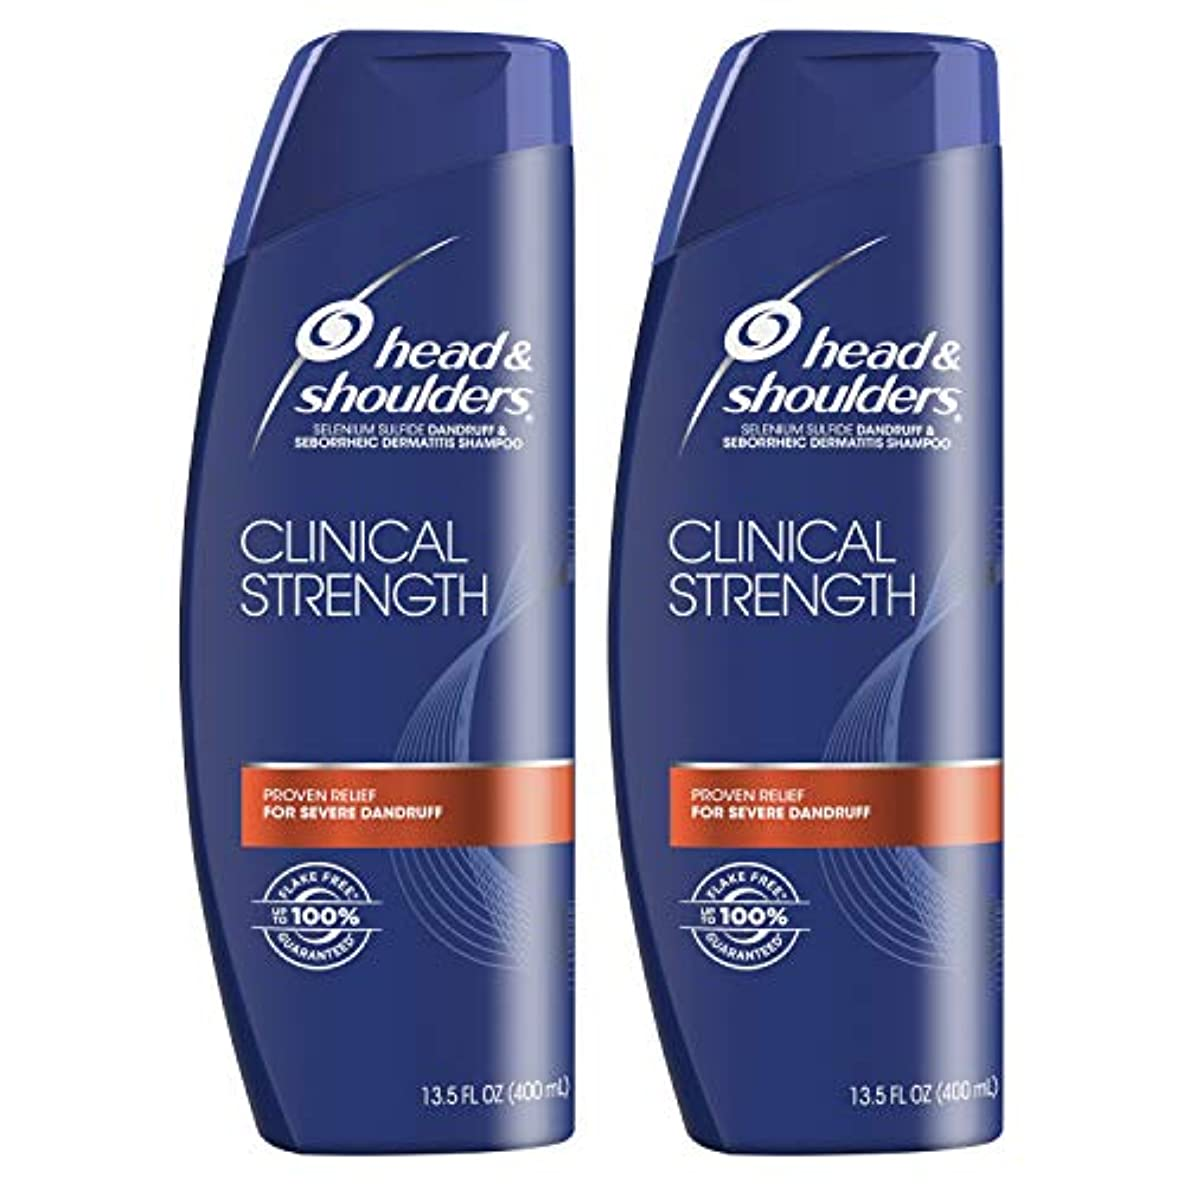 略奪気体の消費Head and Shoulders Clinical Strength Dandruff and Seborrheic Dermatitisシャンプー、13.5 FL OZ